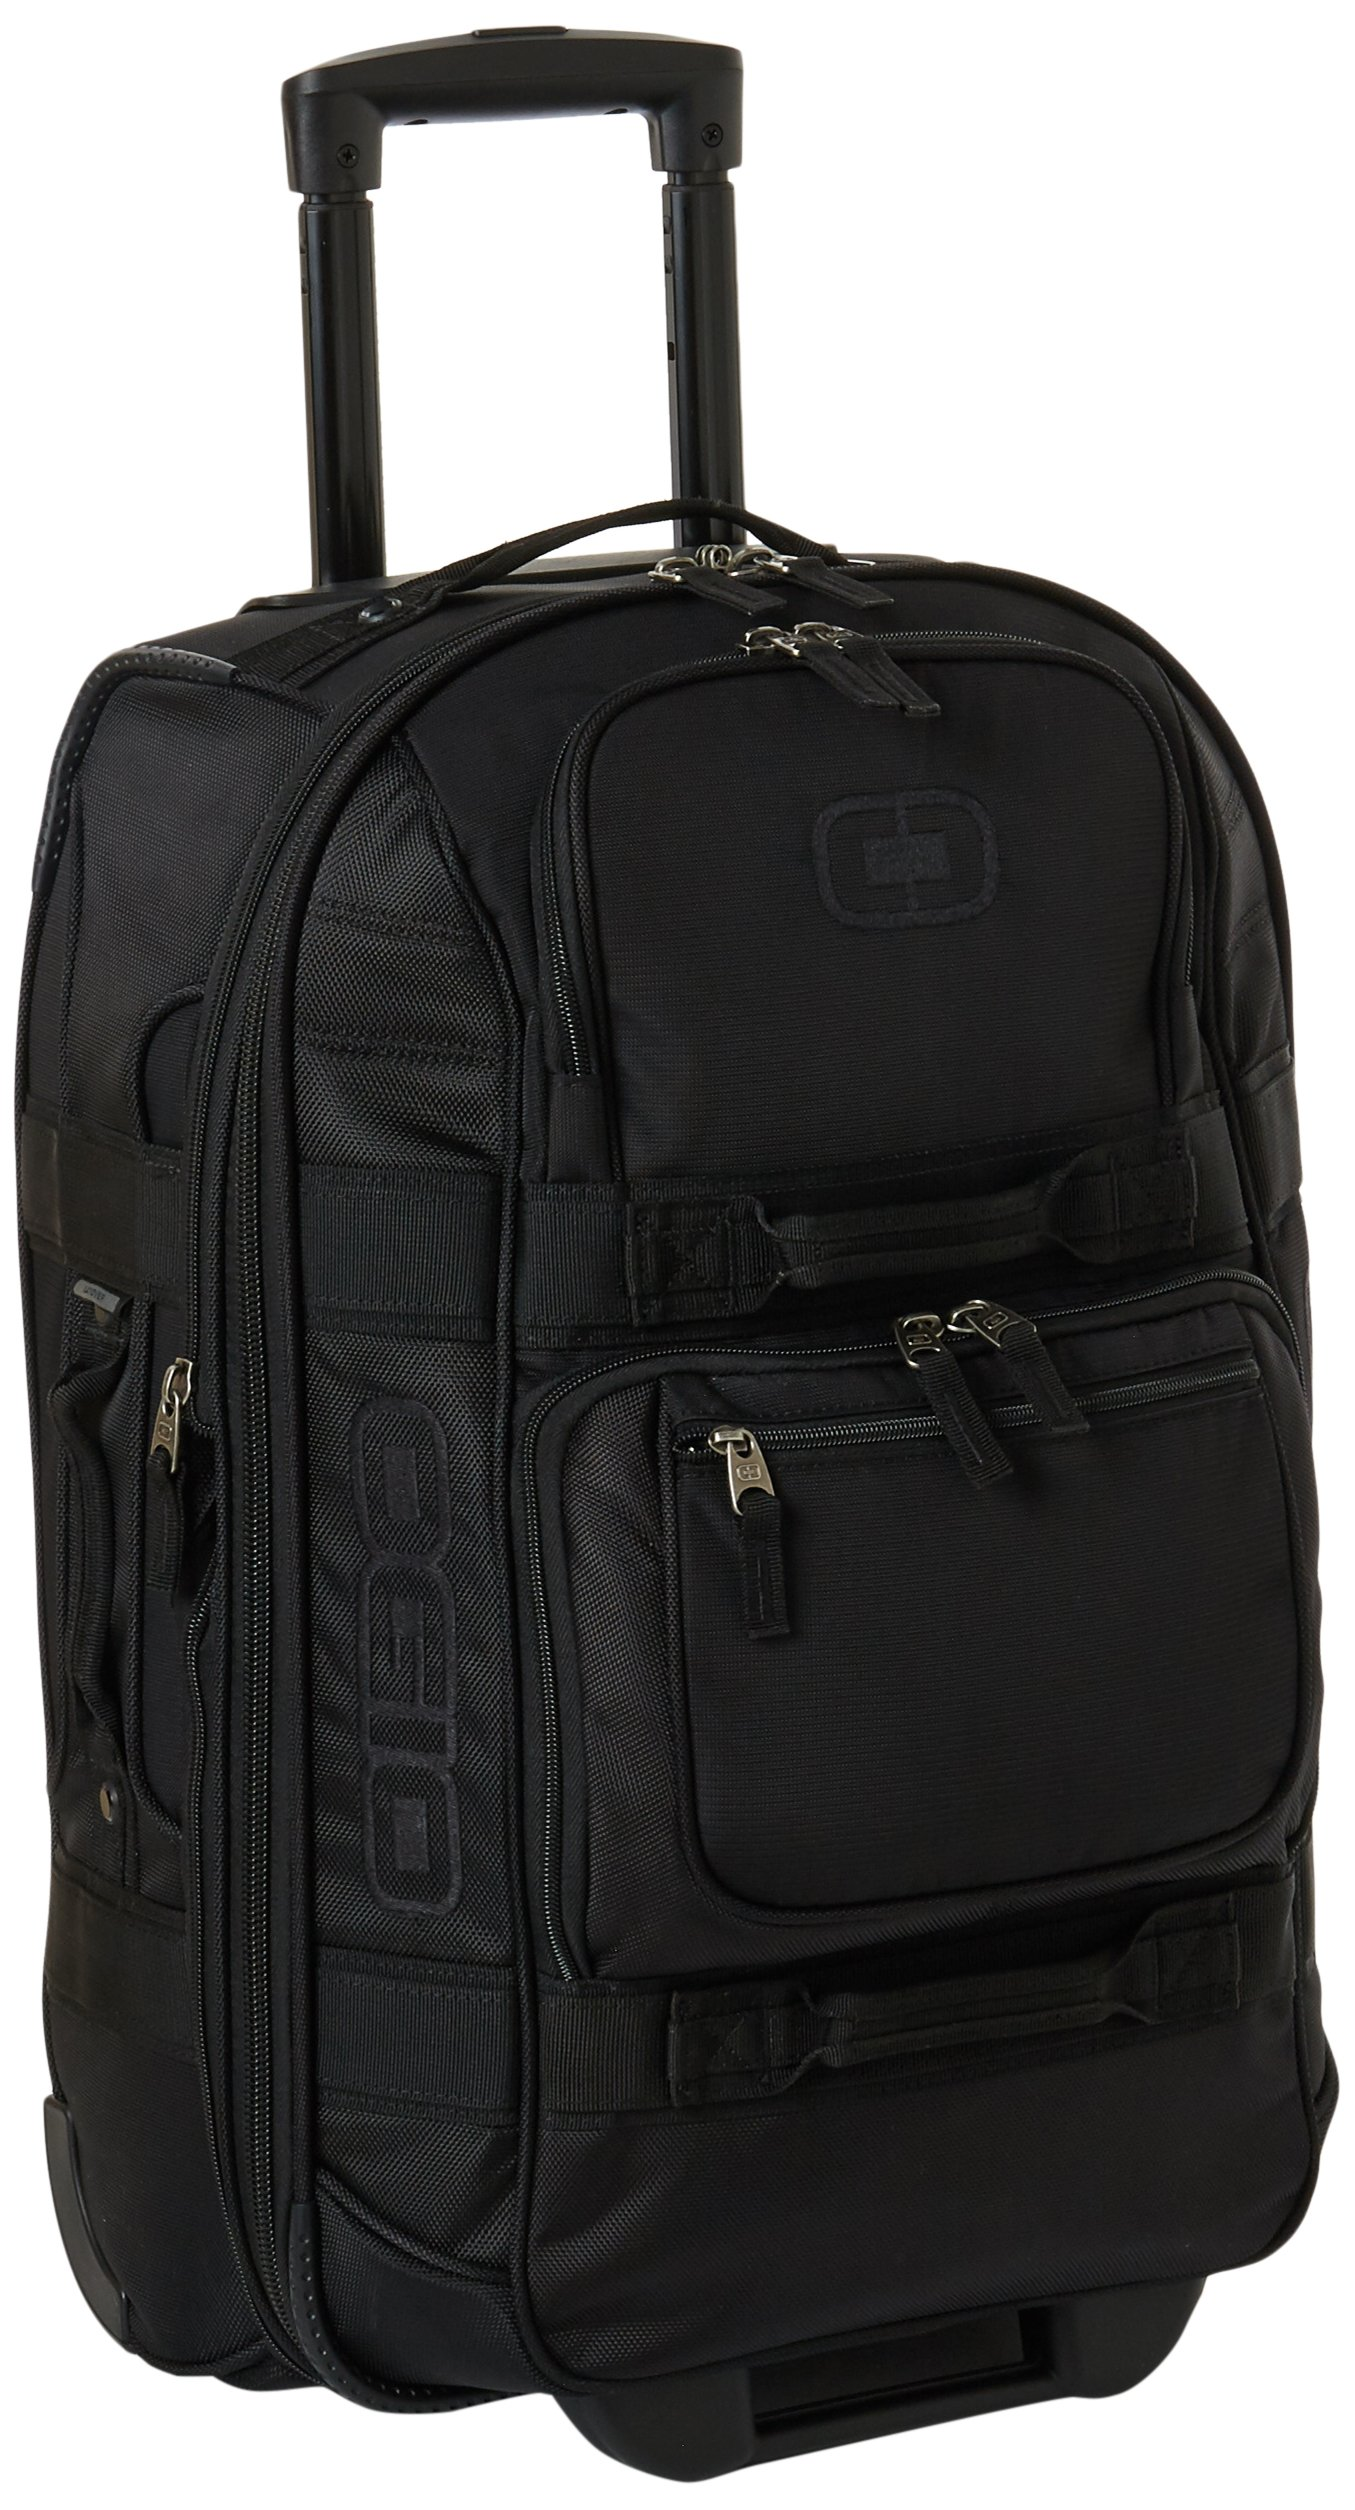 OGIO Layover Travel Bag (Stealth) by OGIO